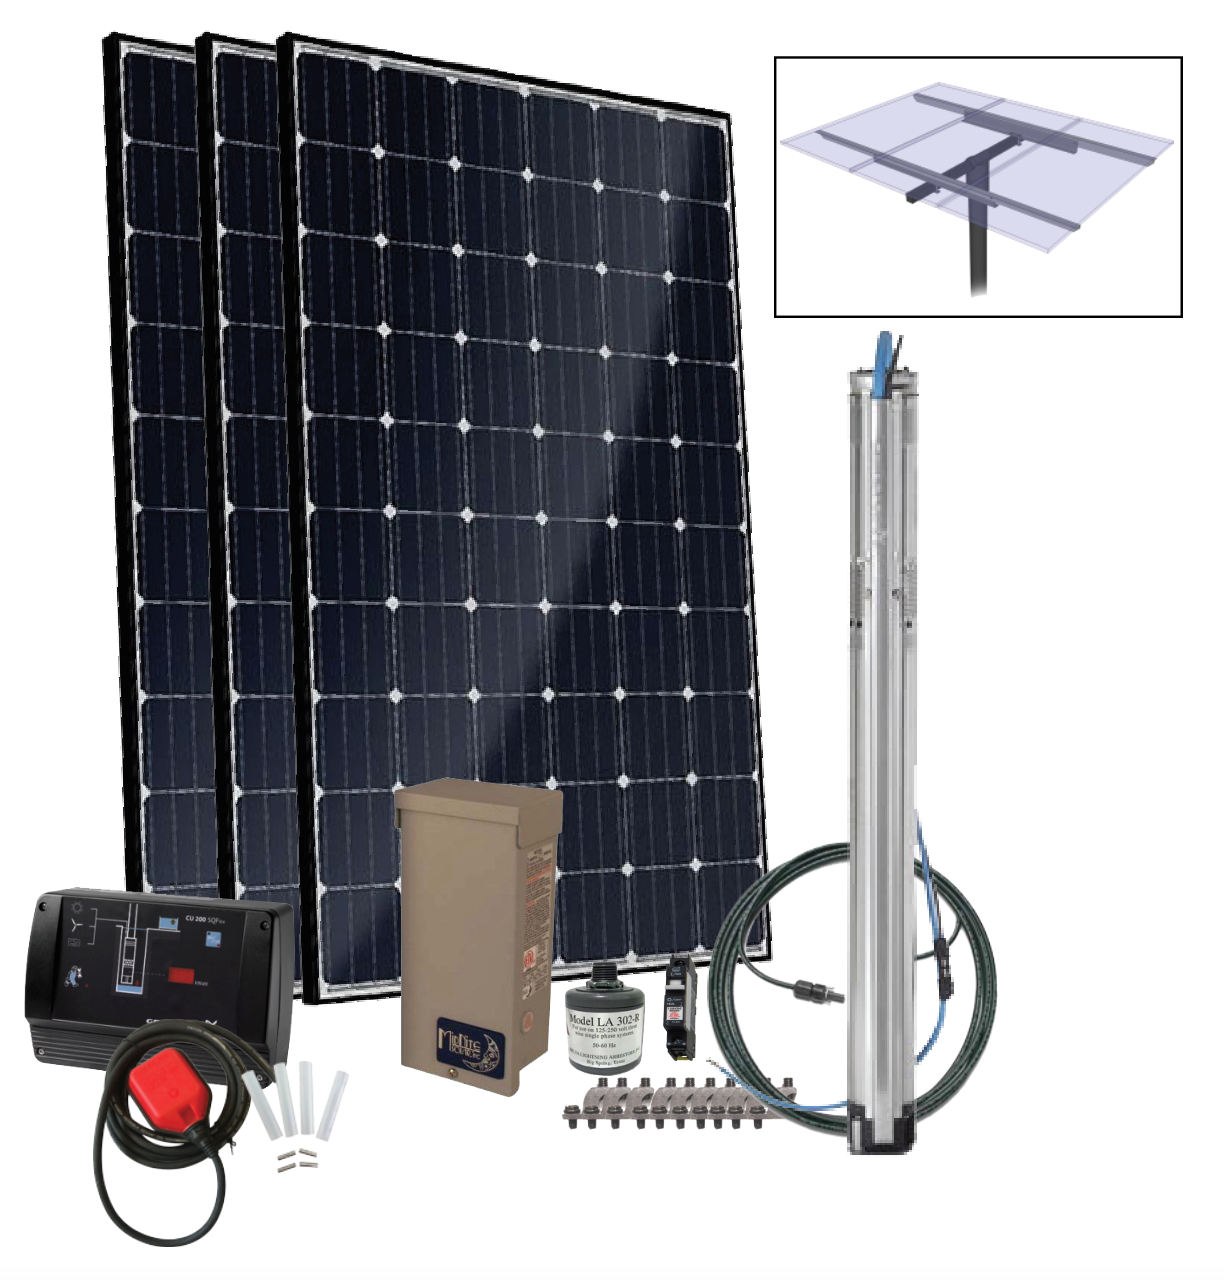 Grundfos SQFlex Pre-designed Solar Water Pumping Kit using 25 sqf-7 pump 28 to 6